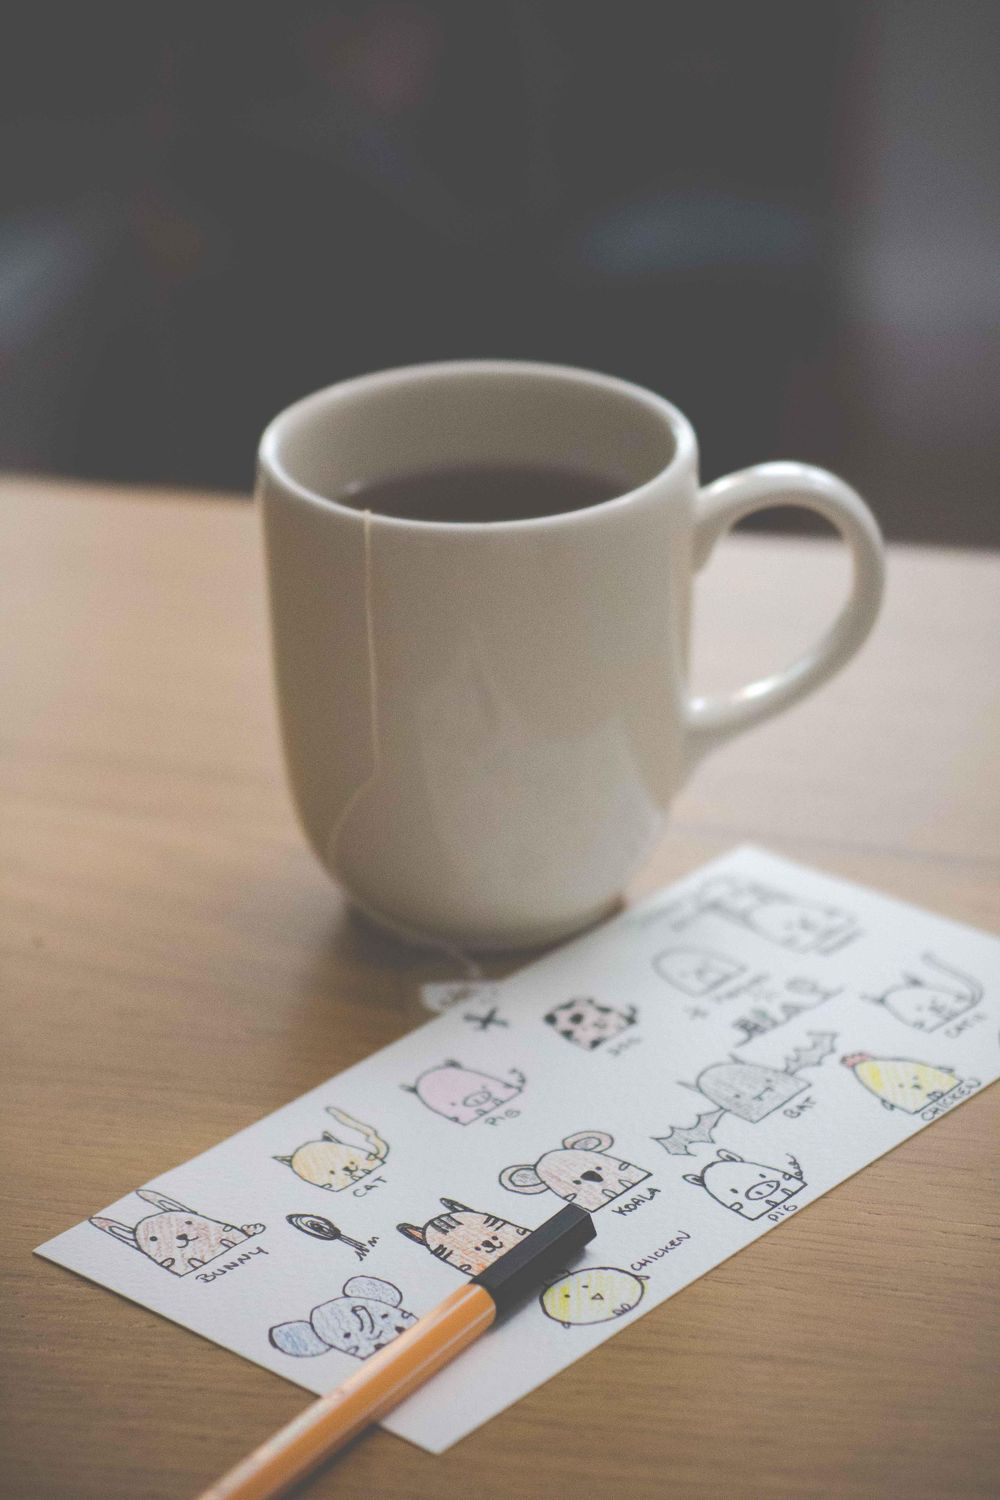 A cup of tea moment - image 3 - student project